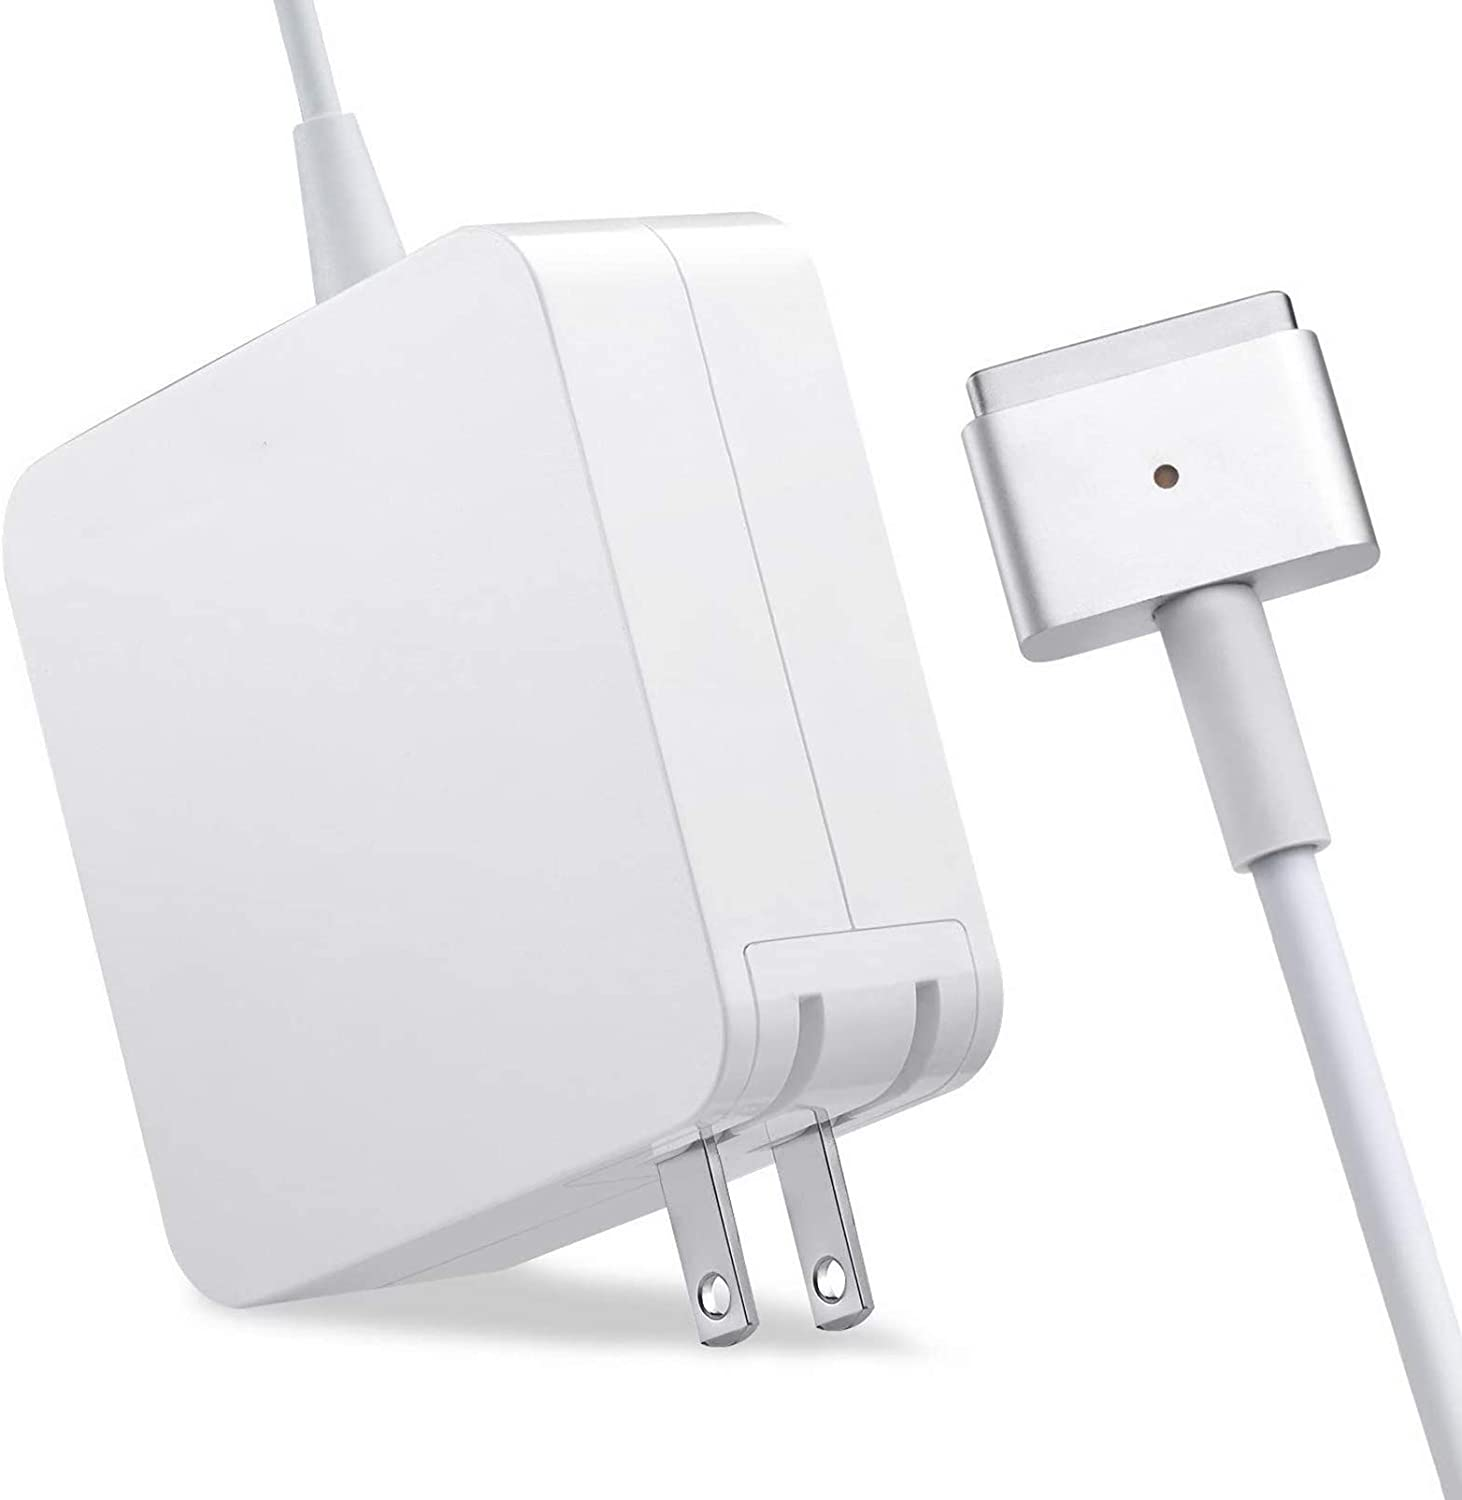 MacBook Air Charger, [Apple MFi Certified] with Charging Ports Power Adapter 45W Fast Charging Cable for MacBook Air Notebook Computer Charger Cord (T-tip) Shape Power Adapter Accessories-White